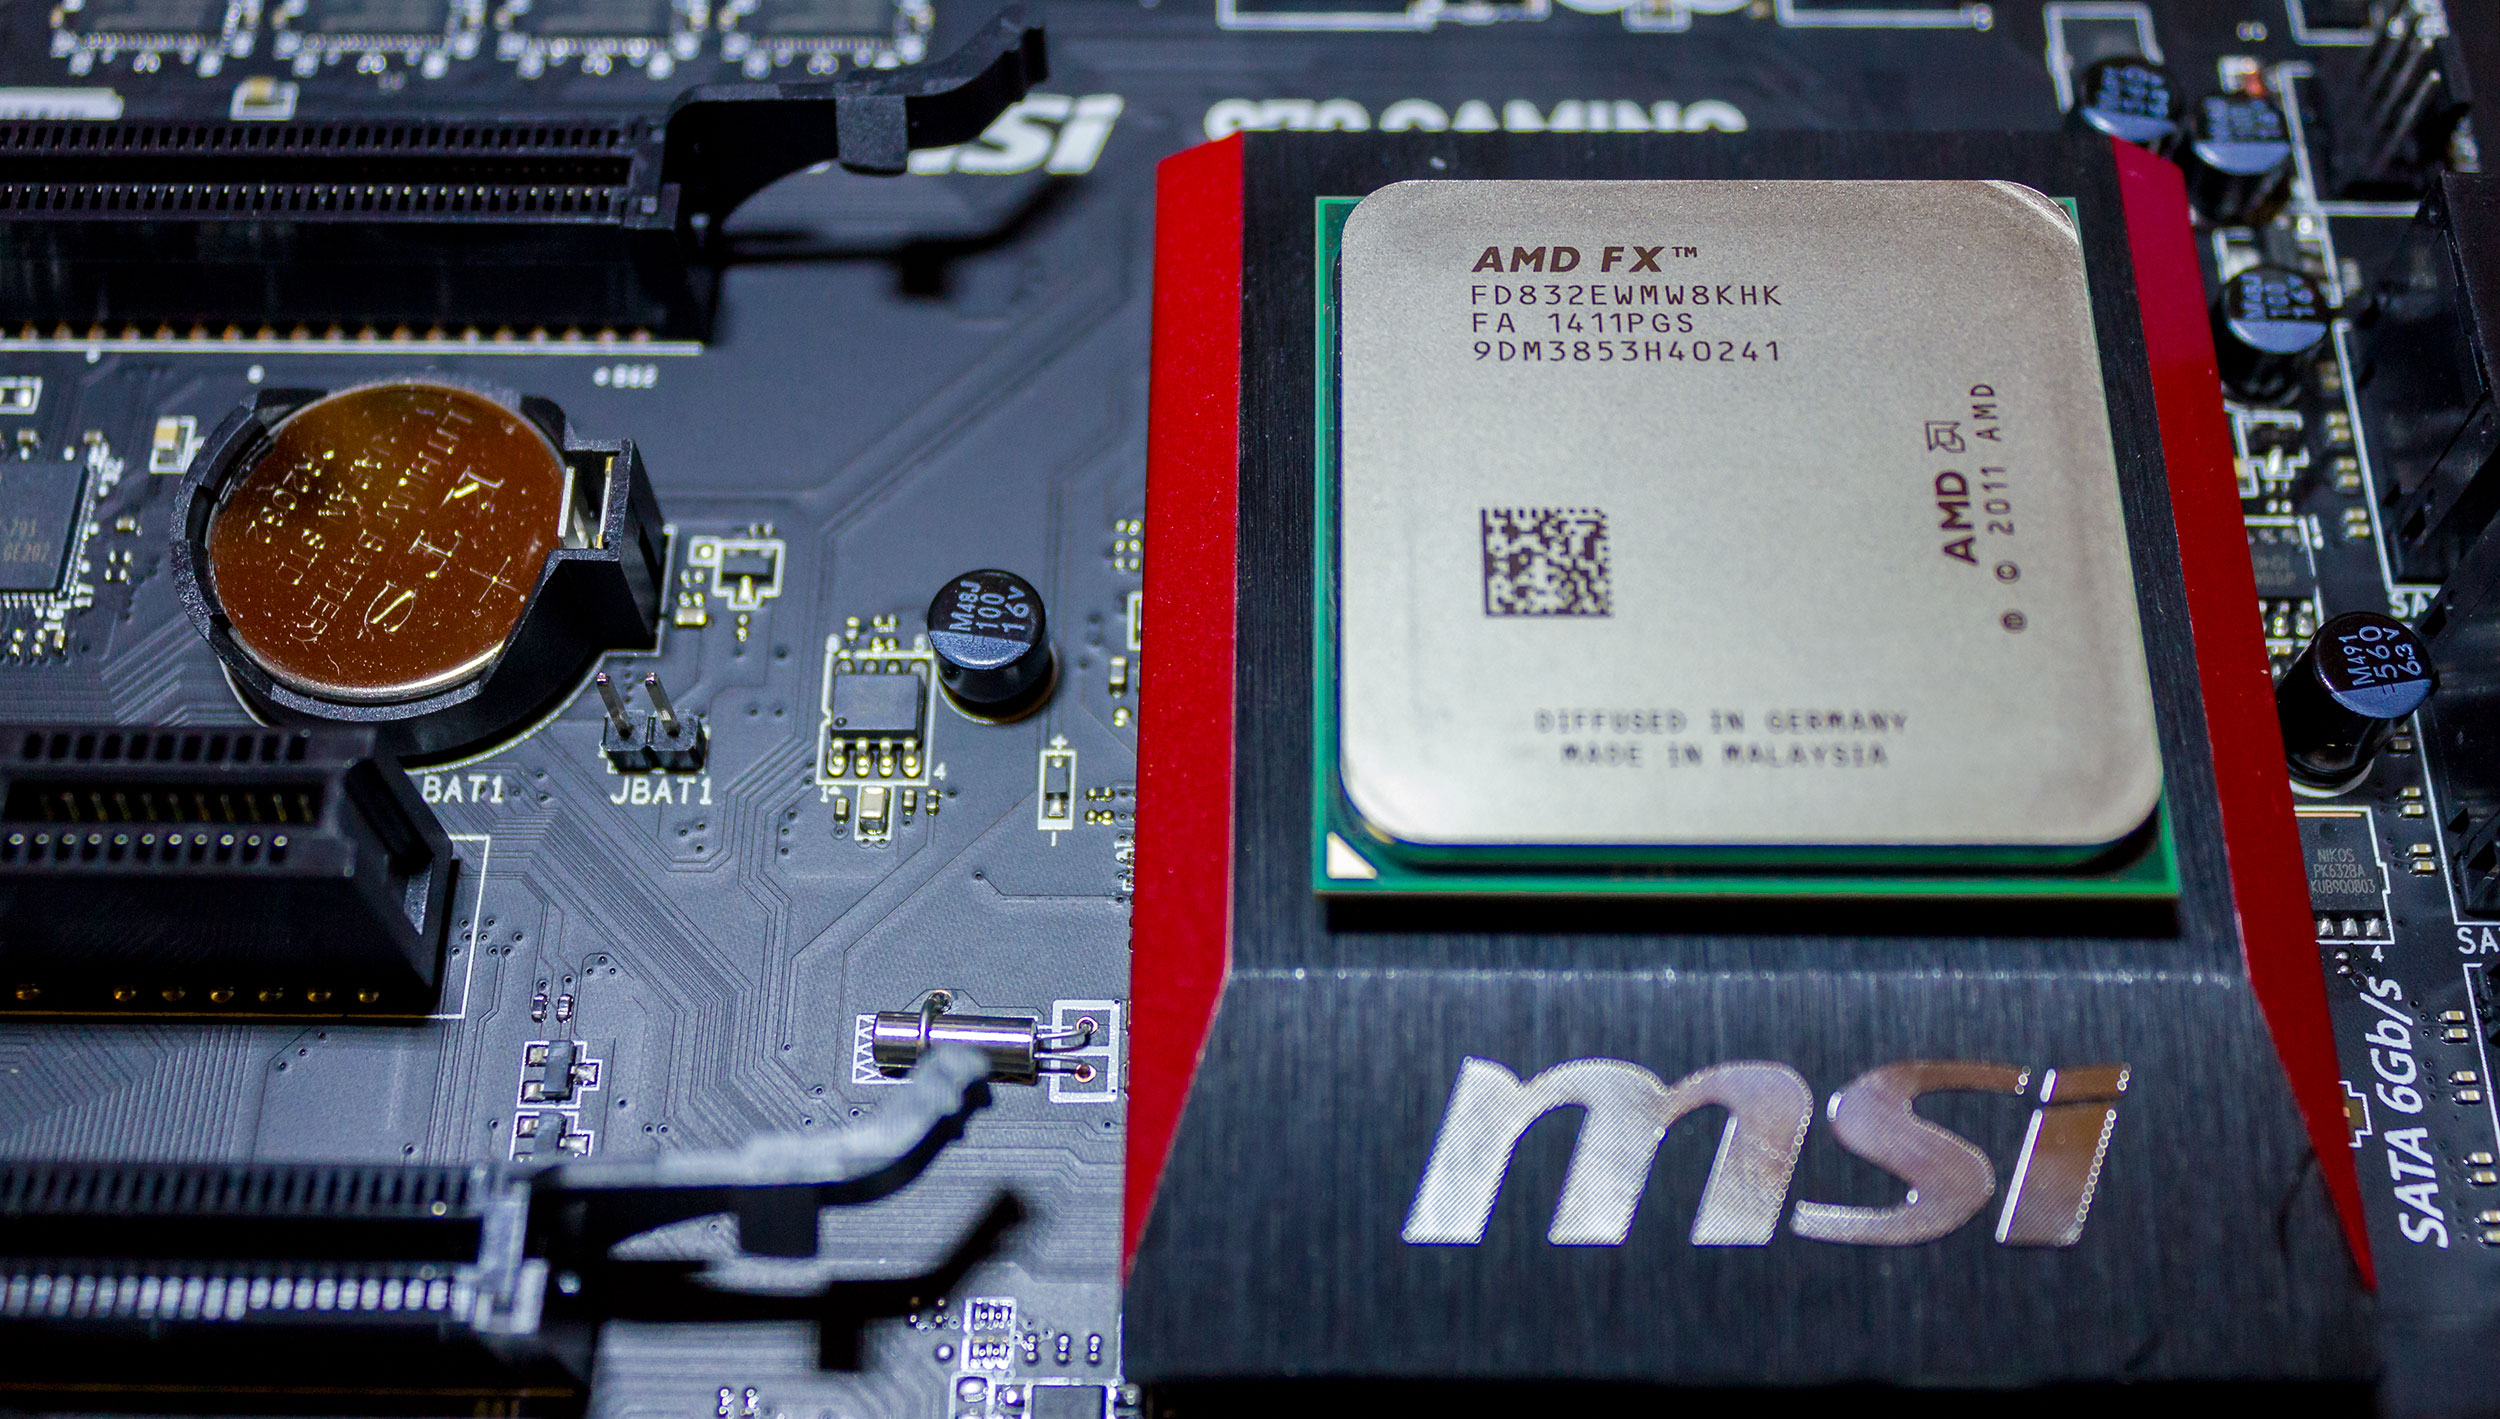 Photo of [UPDATE Video] AMD FX-8320E si MSI 970 Gaming, un sistem puternic la un pret bun